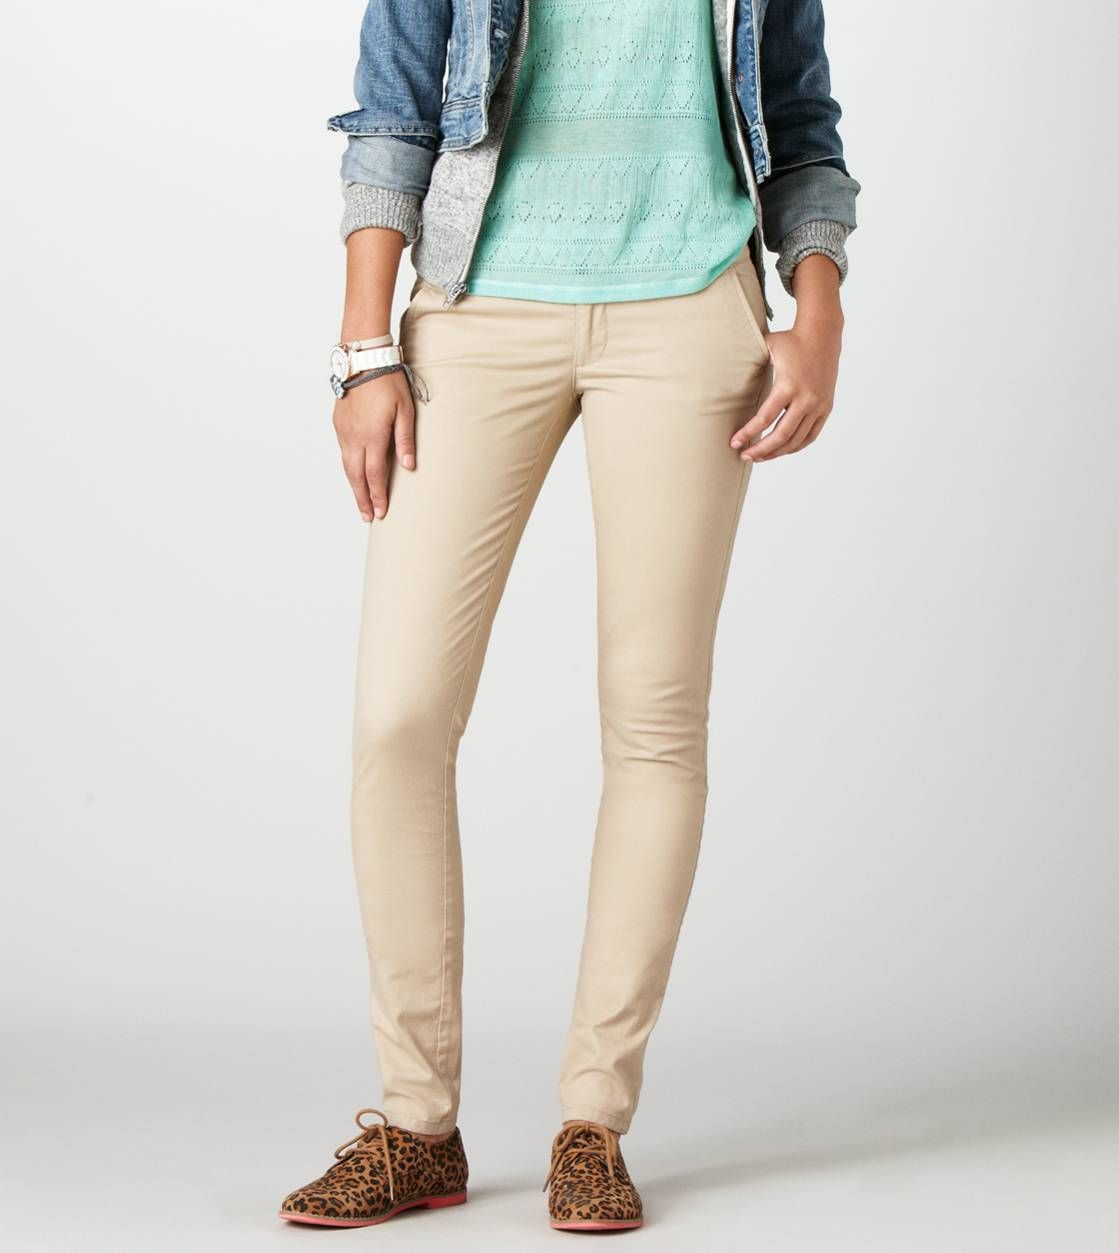 skinny trousers > skinnies and jeggings. AE